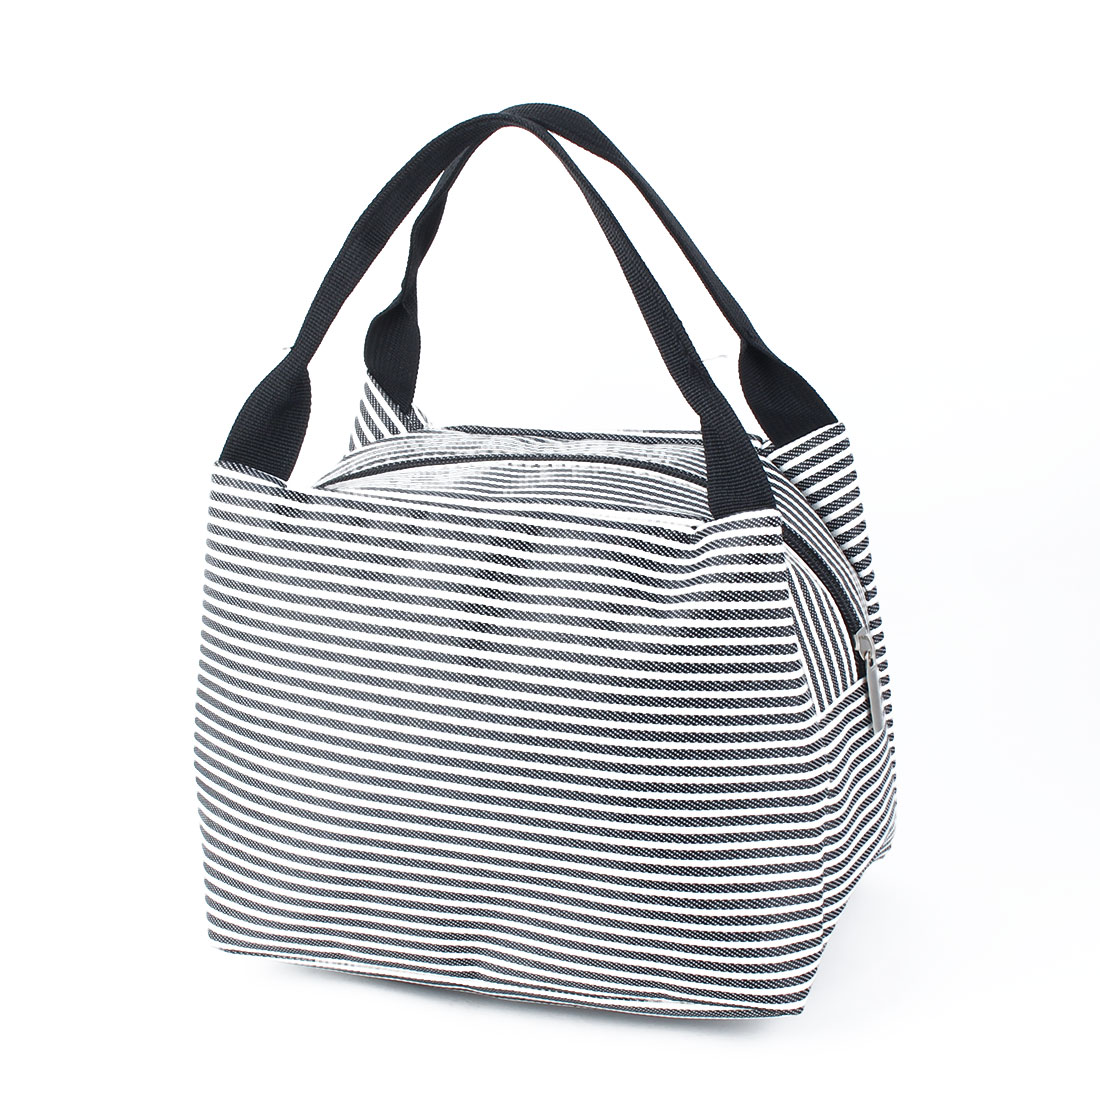 Outdoor Portable Stripes Insulated Thermal Cooler Lunch Bag Picnic Carry Tote Container Black